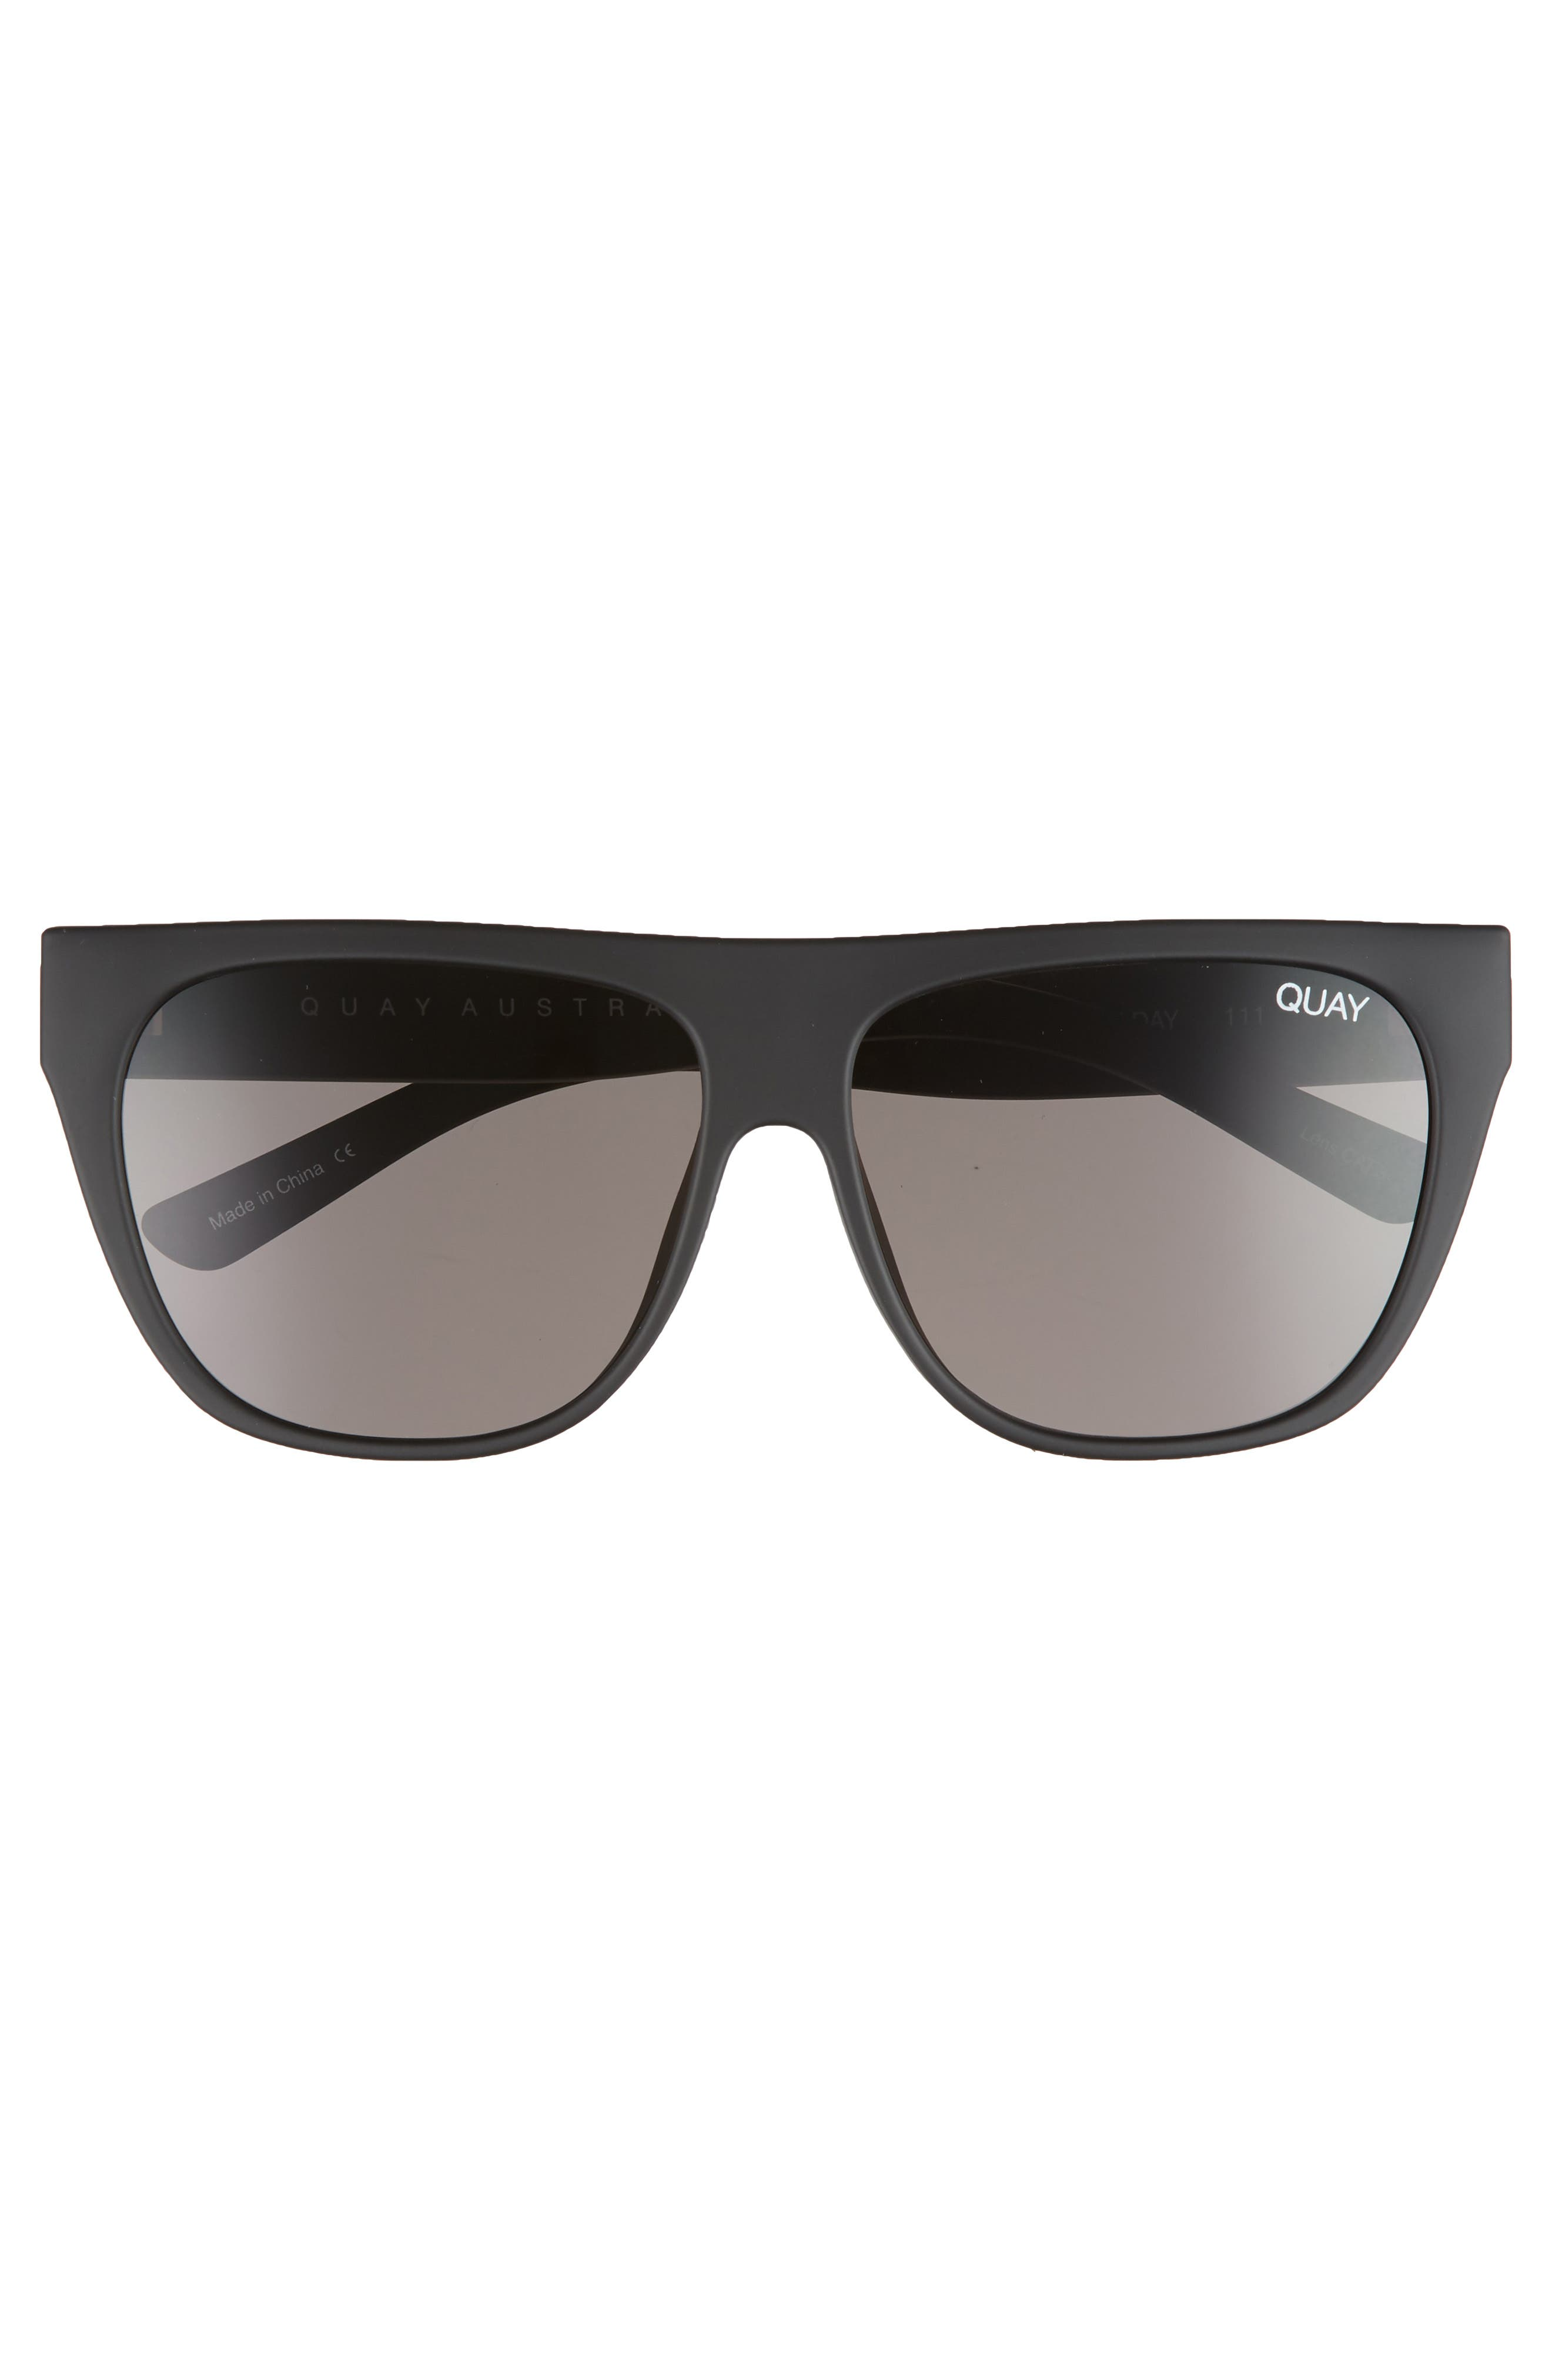 Drama by Day 55mm Square Sunglasses,                             Alternate thumbnail 3, color,                             005